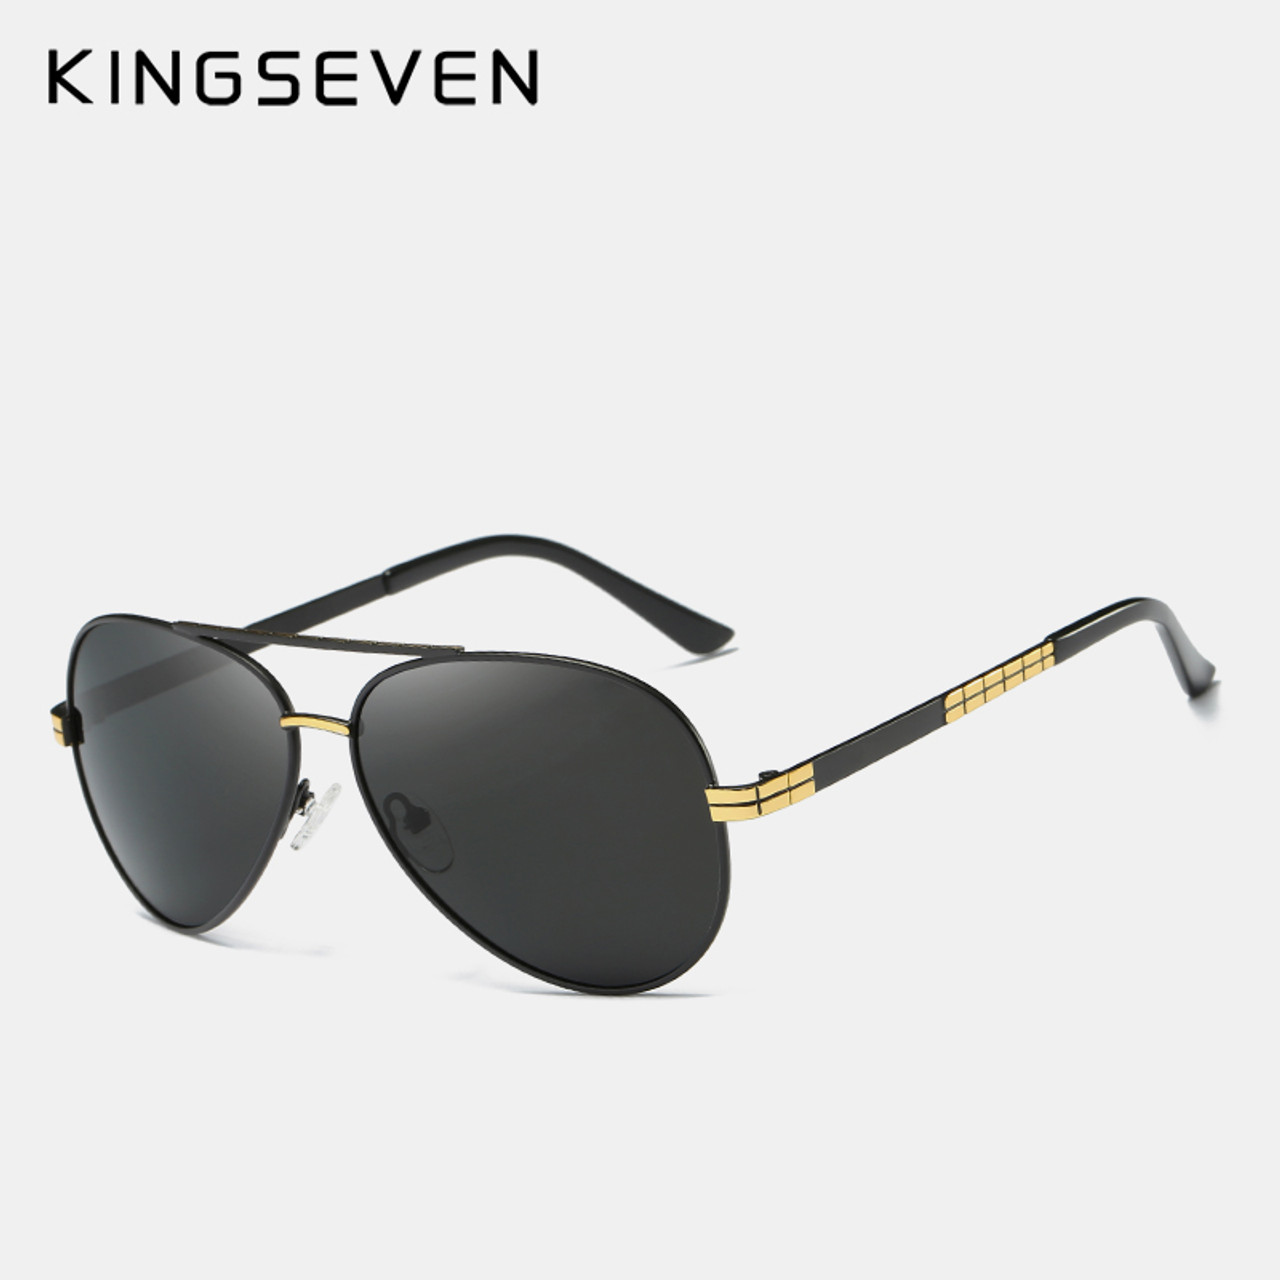 97cb9f3b871 ... KINGSEVEN Fashion Classic Brand Sunglasses Men s HD Polarized Aluminum  Driving Luxury Design Sun glasses For men ...